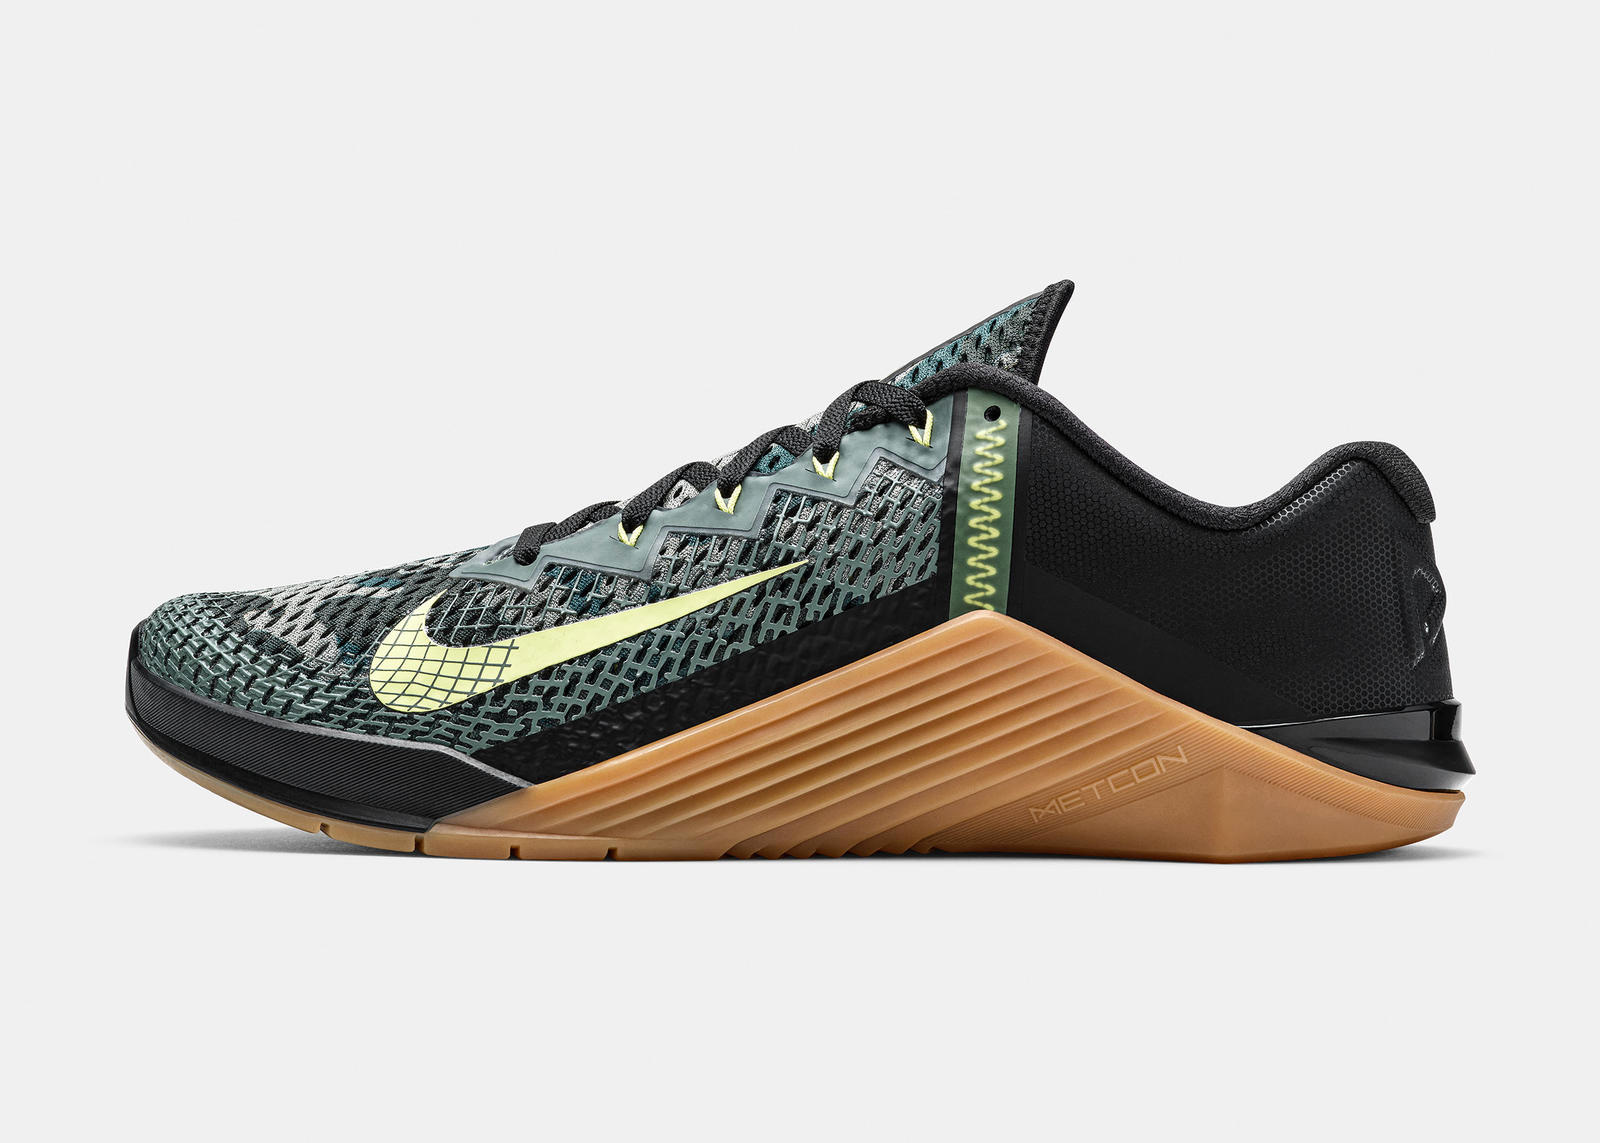 Nike's Metcon 6 Makes Hot Summer Workouts Cooler at werd.com